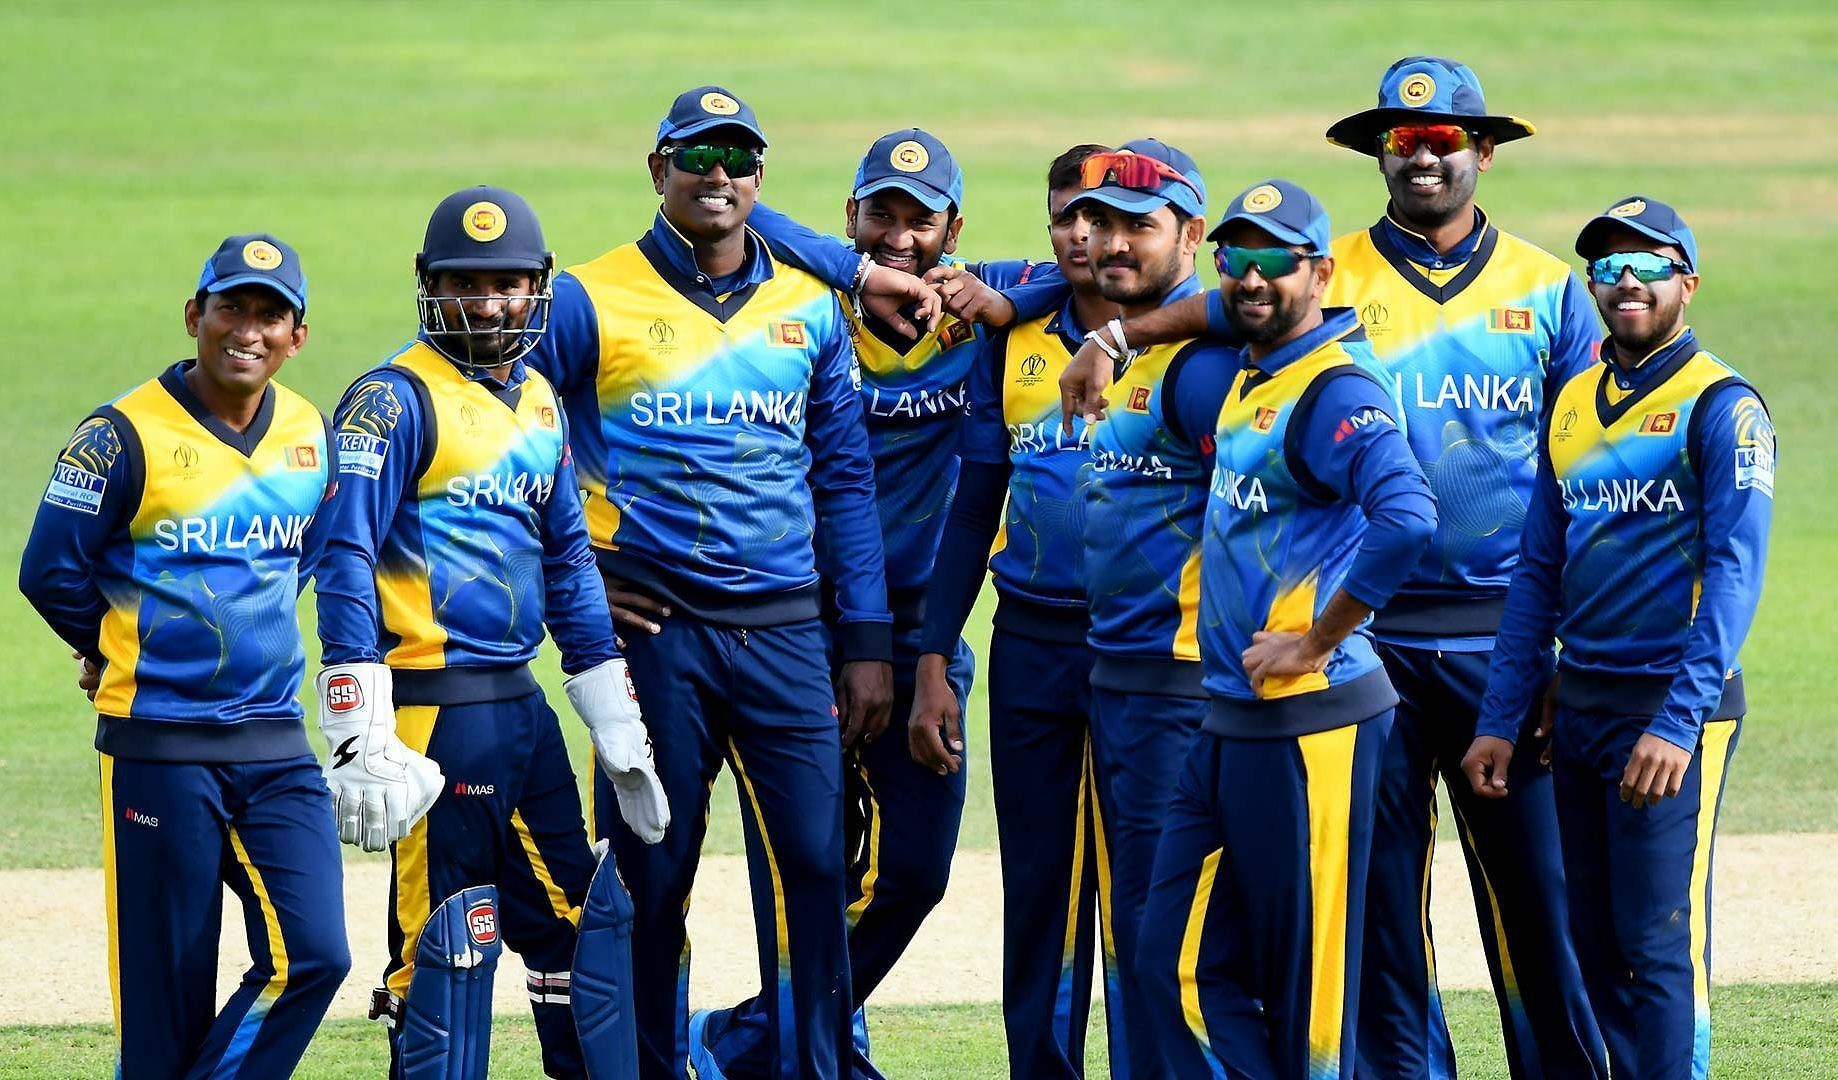 SL vs PNG Dream11 Prediction: Fantasy Cricket Tips, Today's Playing 11s and Pitch Report